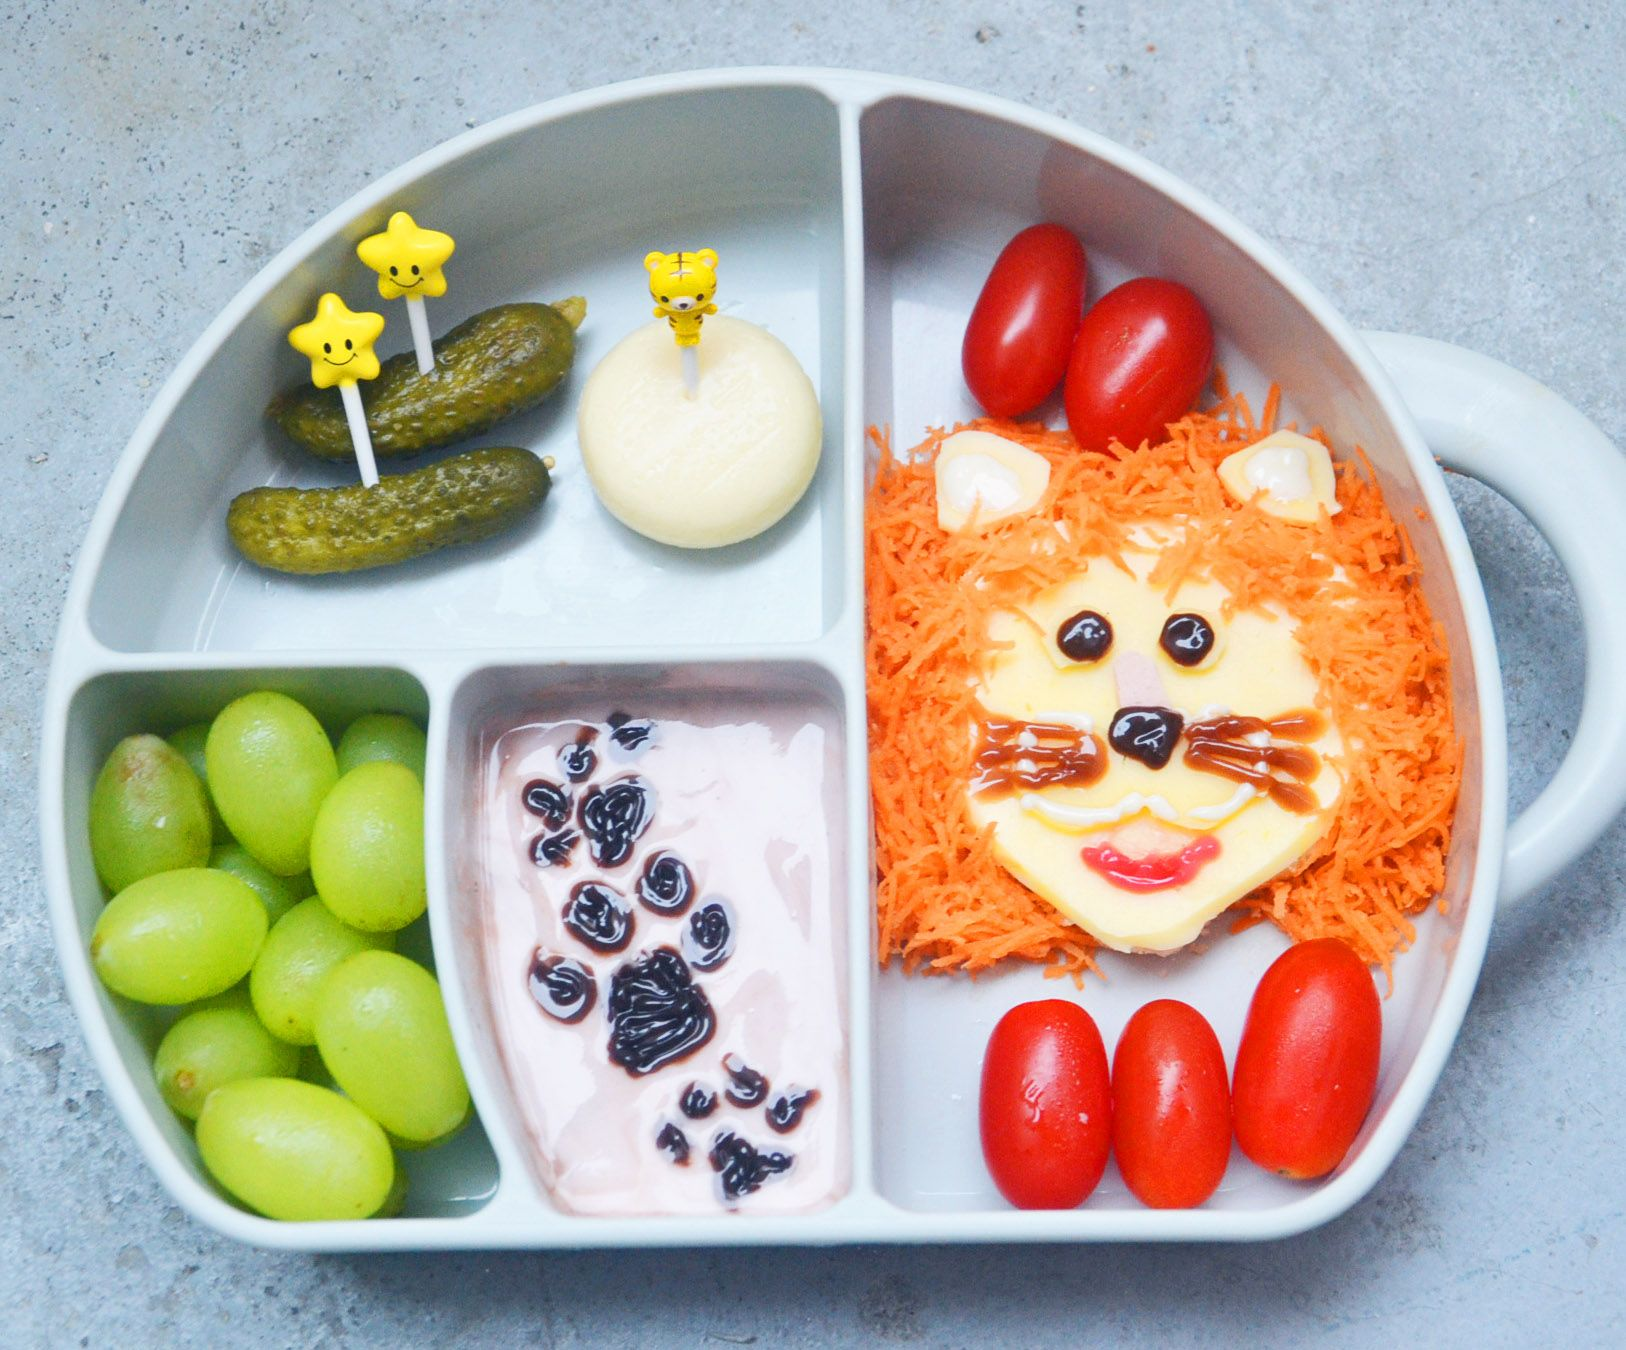 Brotbox Kinder Löwe Bentobox Bentobox Ideas Brotdose Mal Anderst